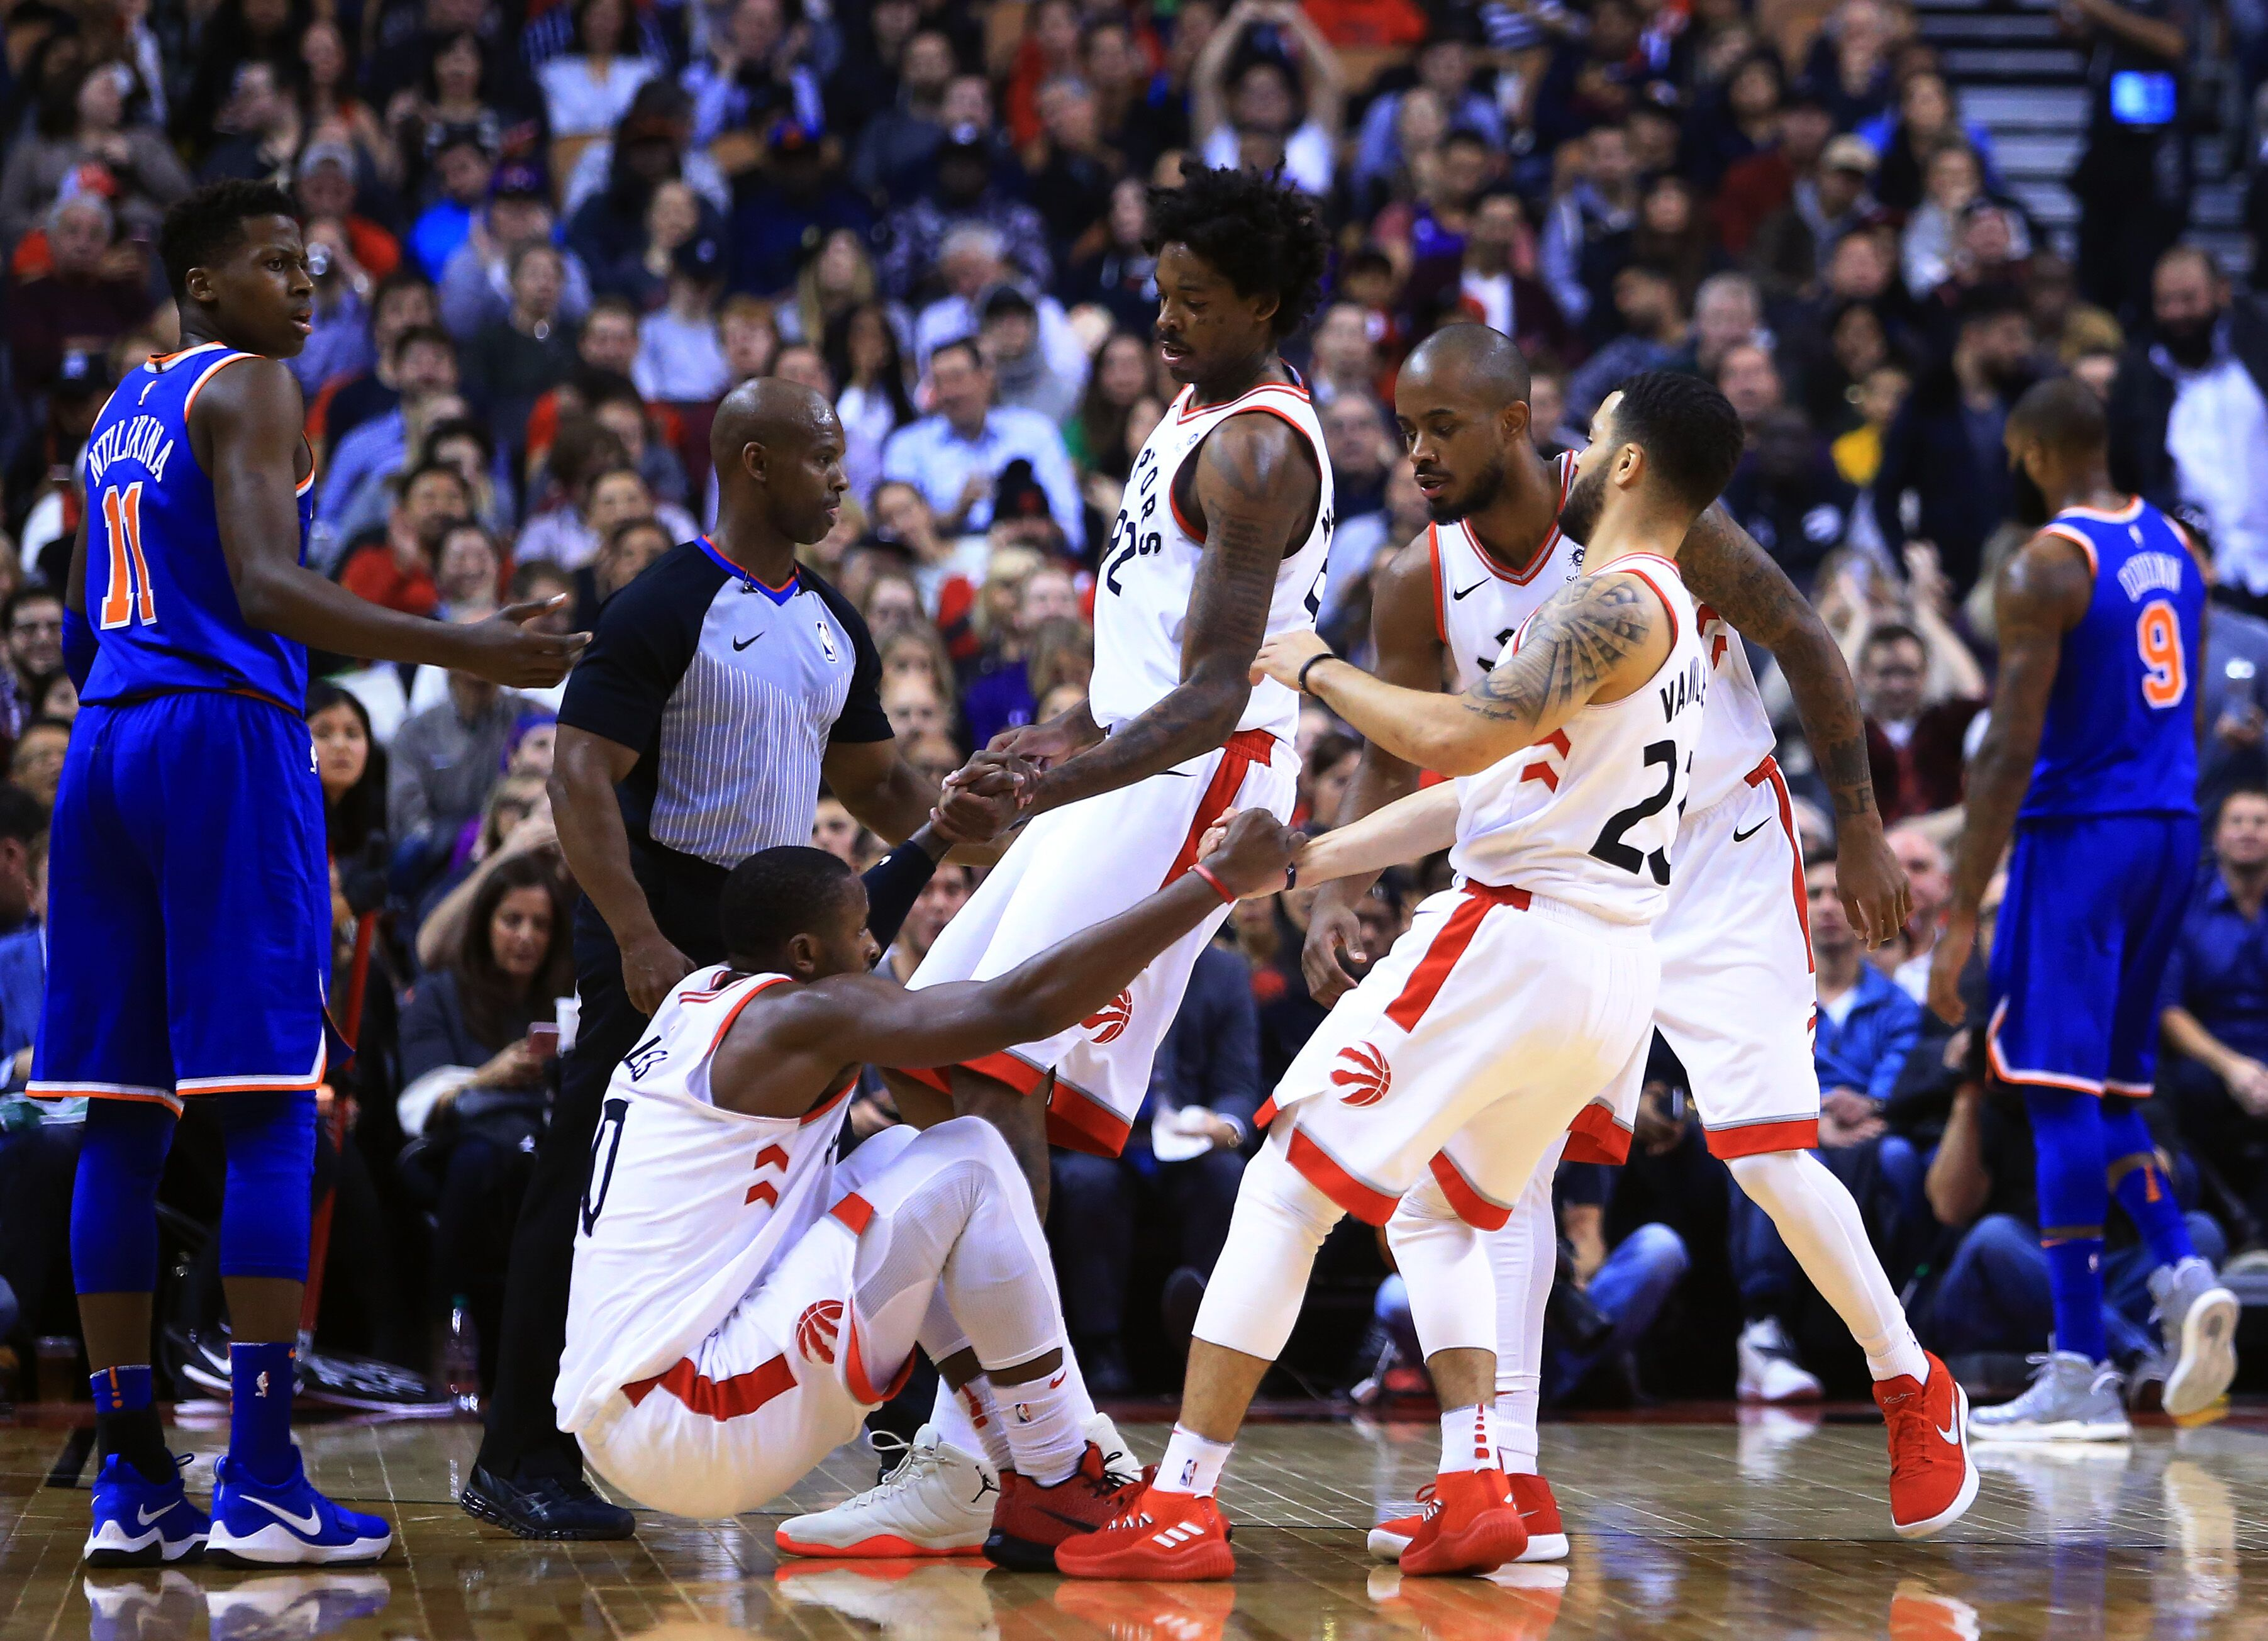 875529528-new-york-knicks-v-toronto-raptors.jpg